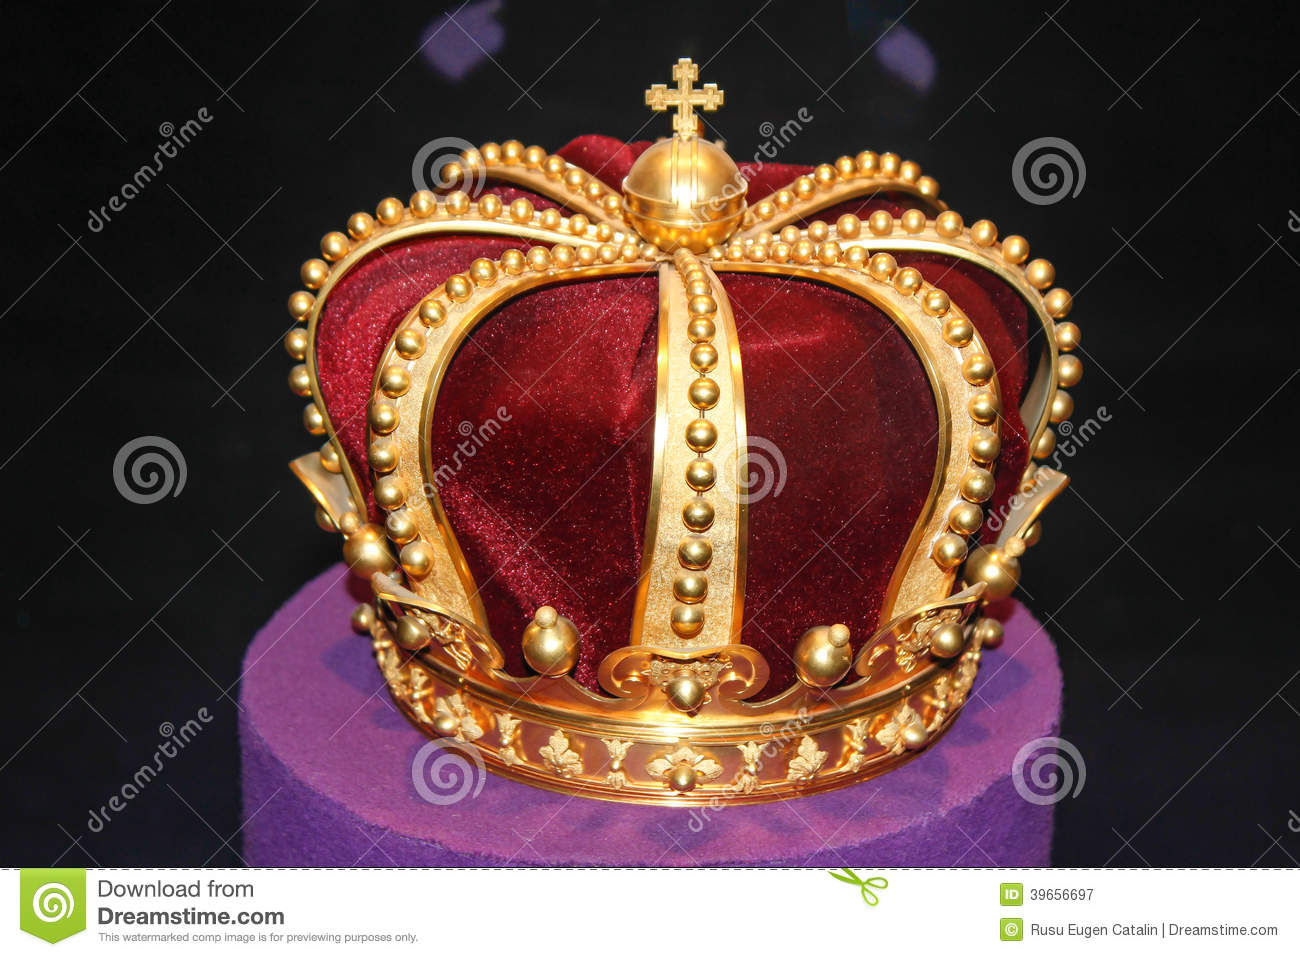 Royal Crown Images Stock Photos amp Vectors  Shutterstock